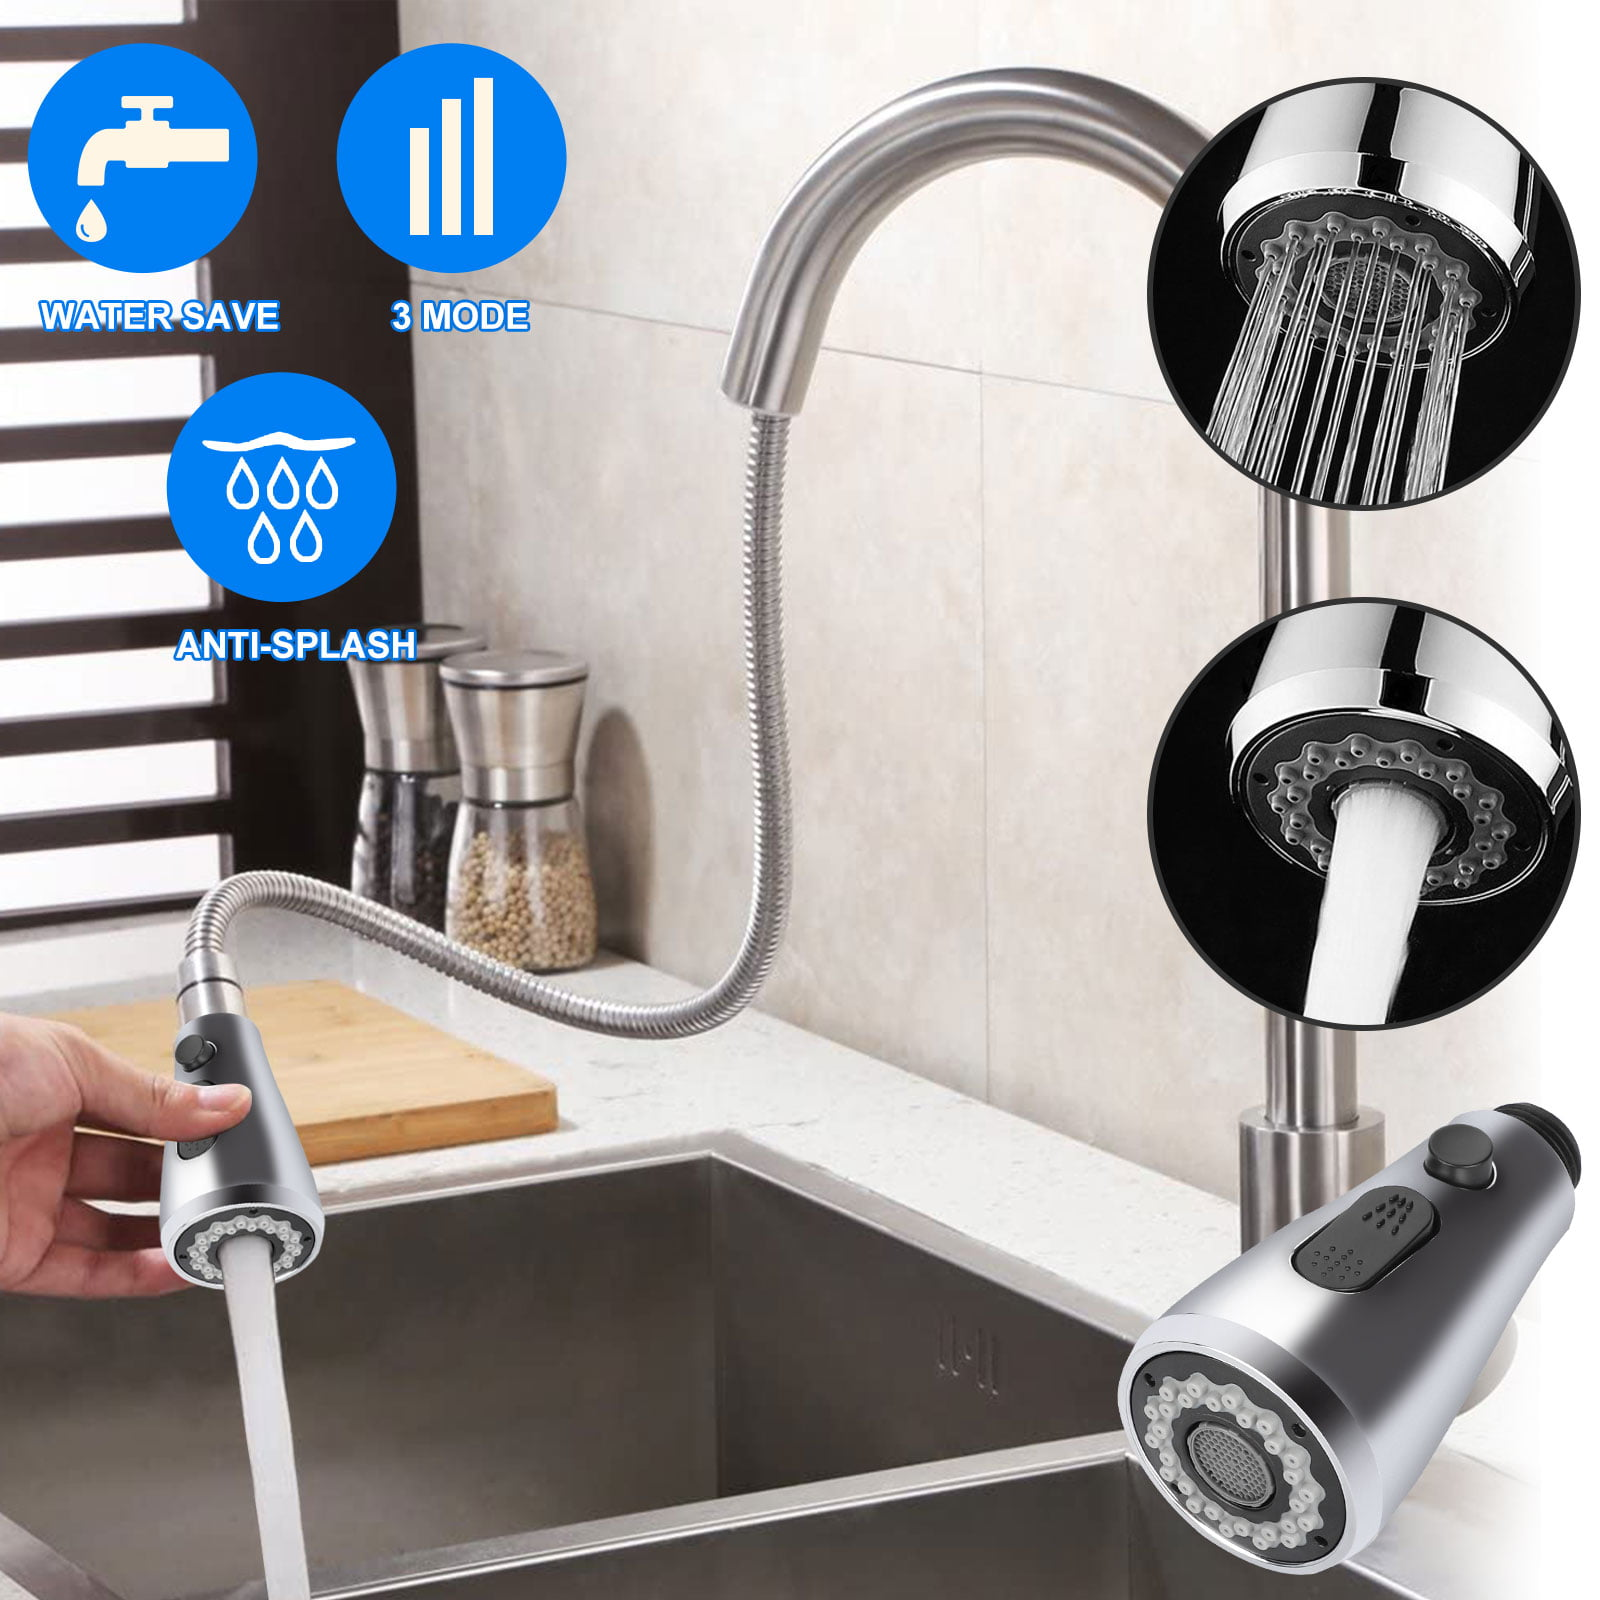 Tsv Kitchen Faucet Sprayer Head Replacement 3 Function Kitchen Sink Faucet Spray Head Replacement Head Chrome Finish Pull Down Faucet Nozzle Spout Spray Head Only For G1 2 Connector Walmart Com Walmart Com